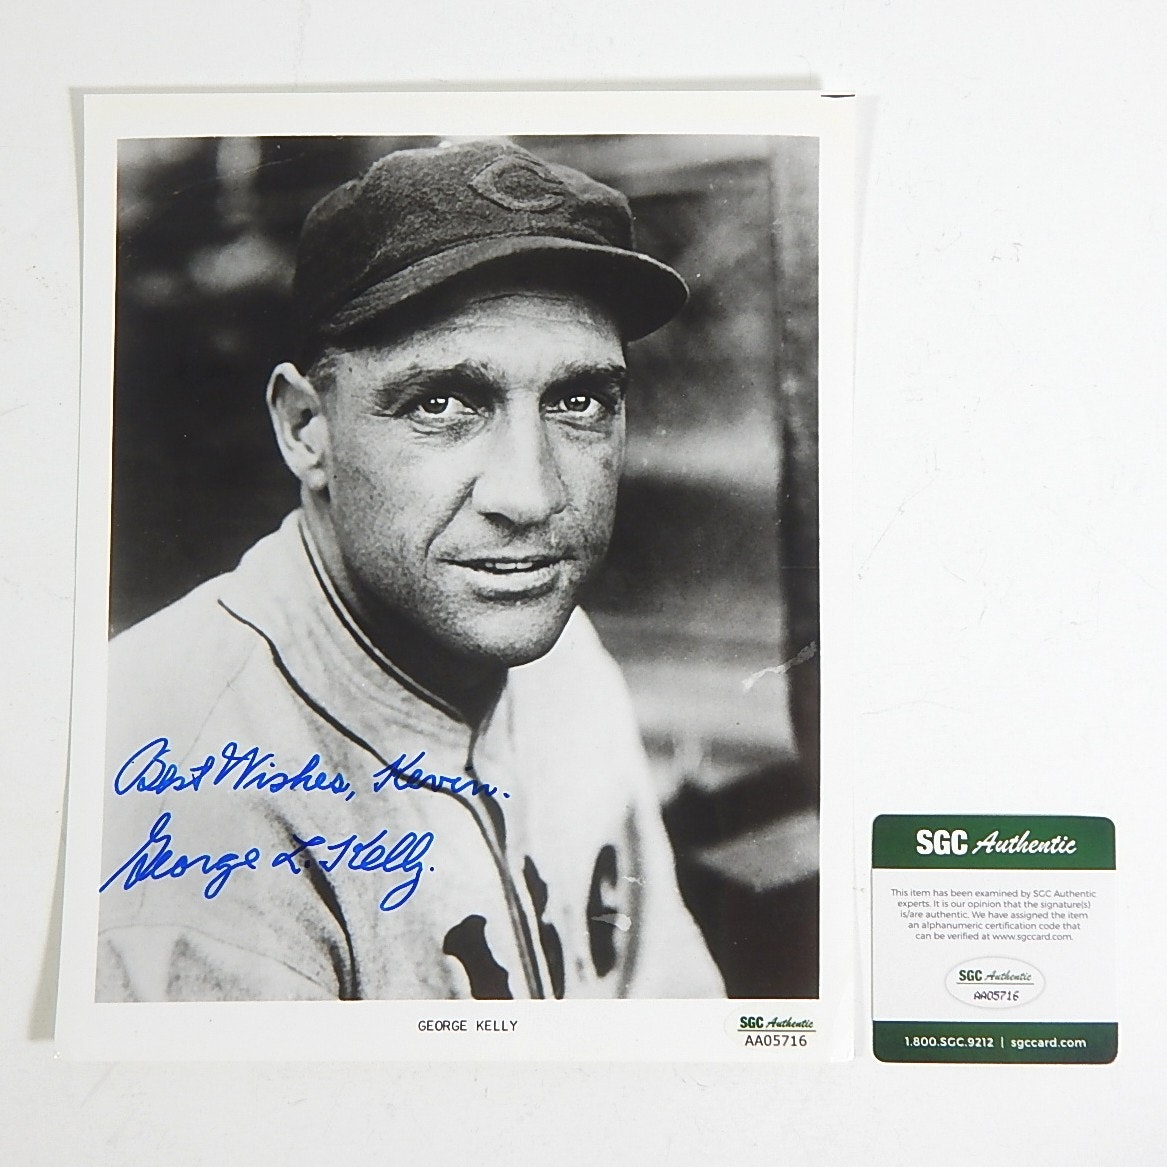 SGC Authenticated George Kelly Autograph